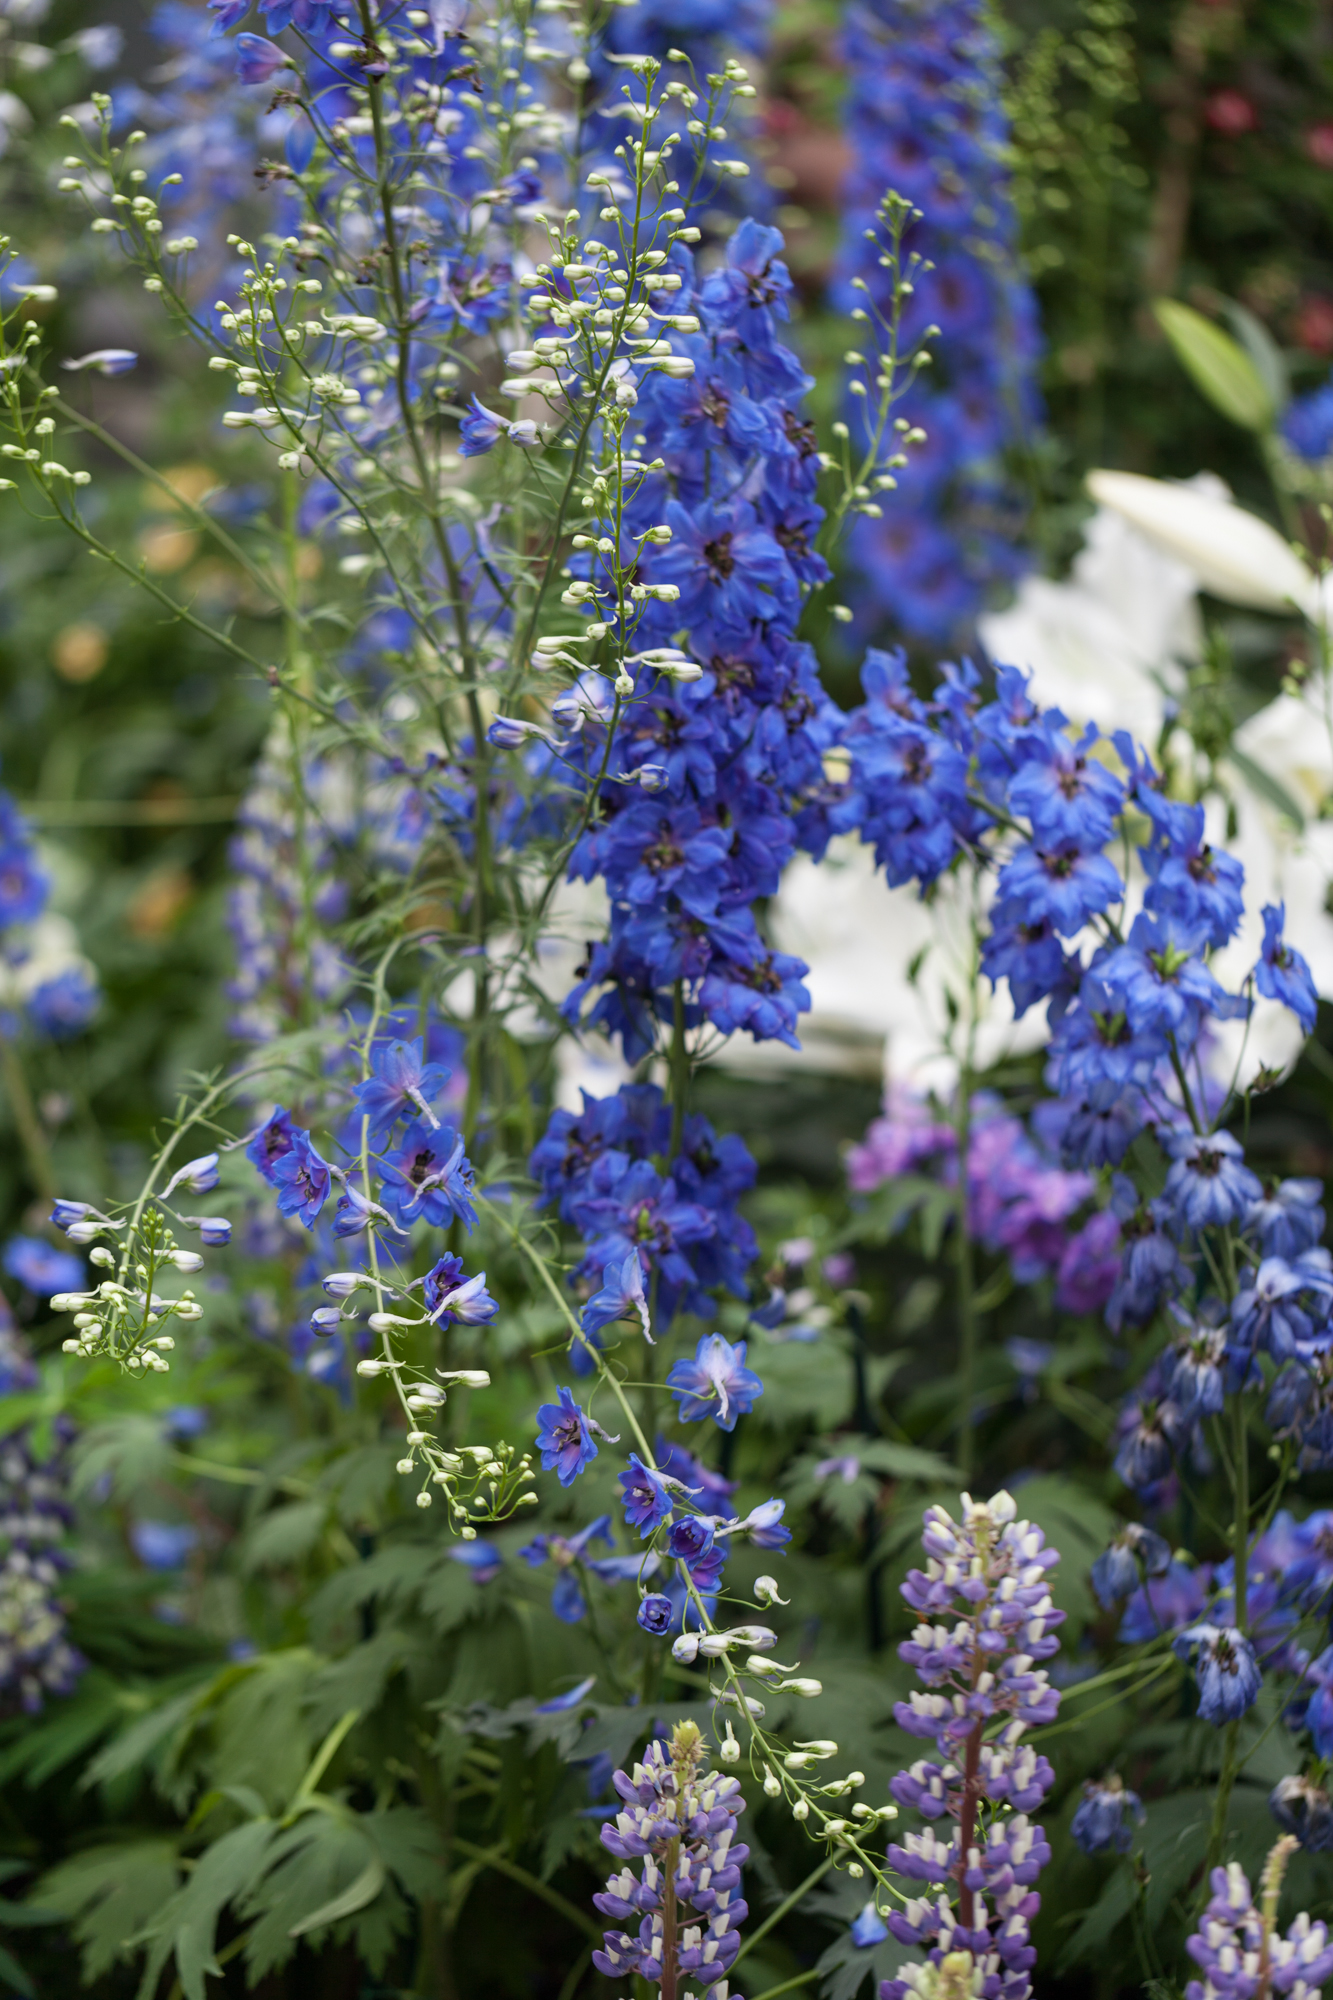 Larkspur ( Delphinium  sp.) flaunting their purple and blue flowers.